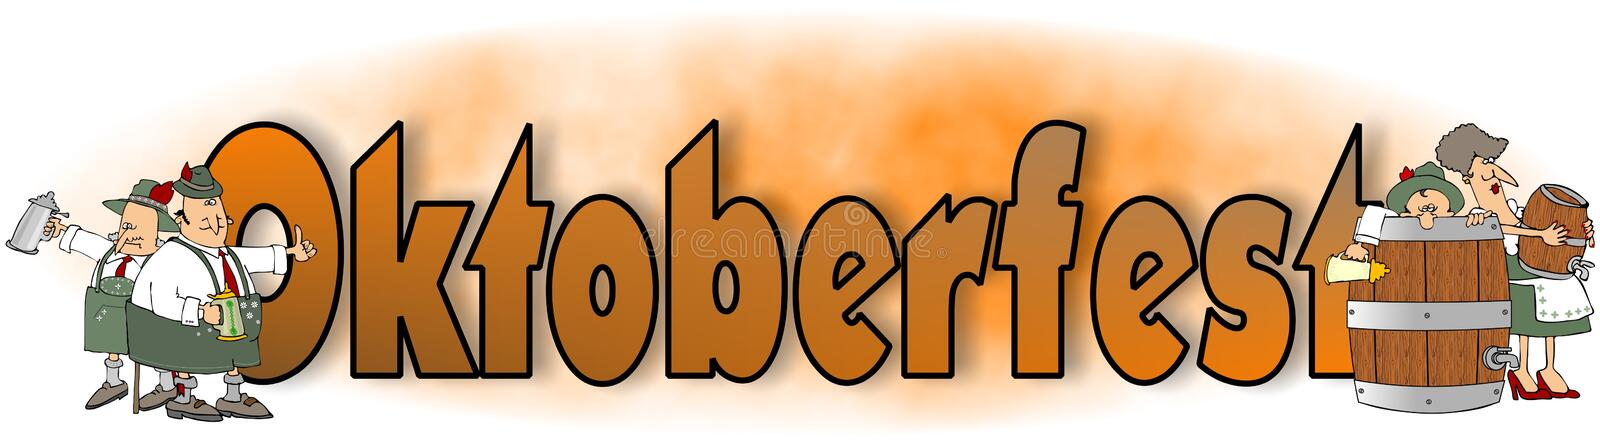 The word Oktoberfest with Bavarian characters vector illustration